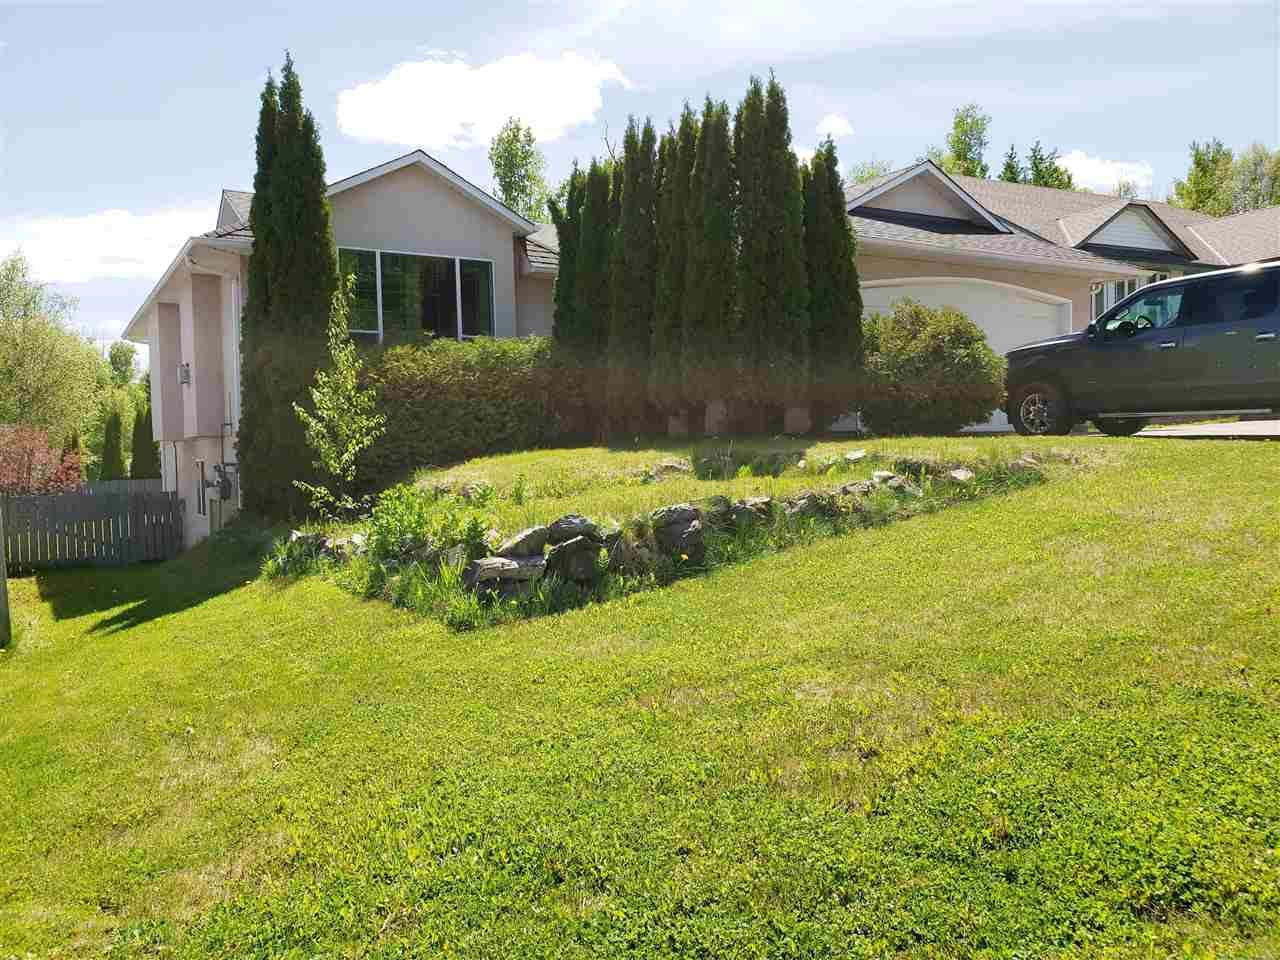 Main Photo: 4371 FOSTER Road in Prince George: Charella/Starlane House for sale (PG City South (Zone 74))  : MLS®# R2460088